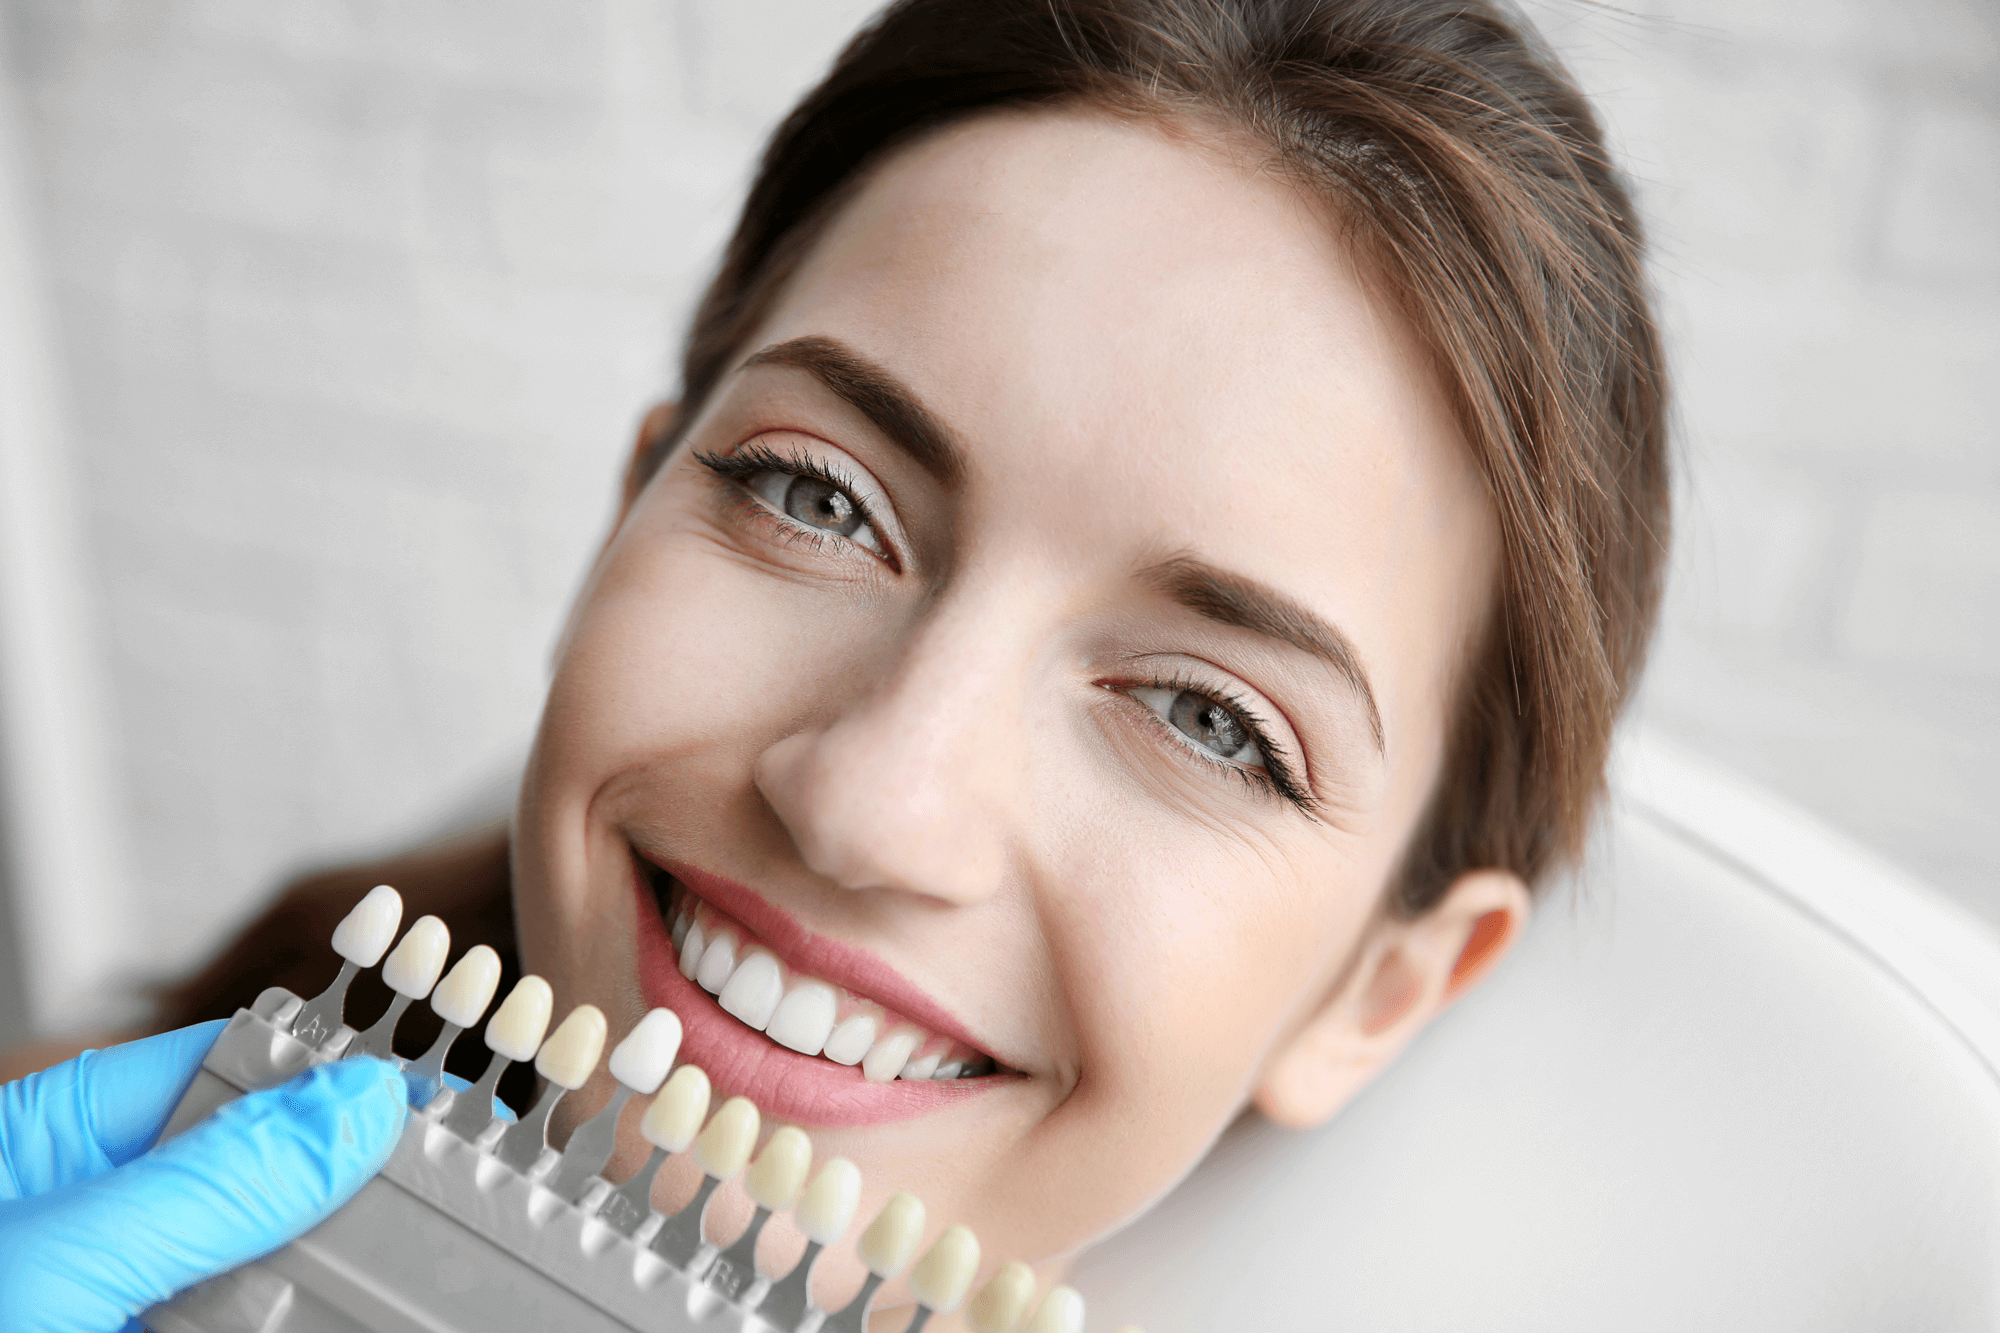 Ceramic implants: Healthy and aesthetic in a natural way